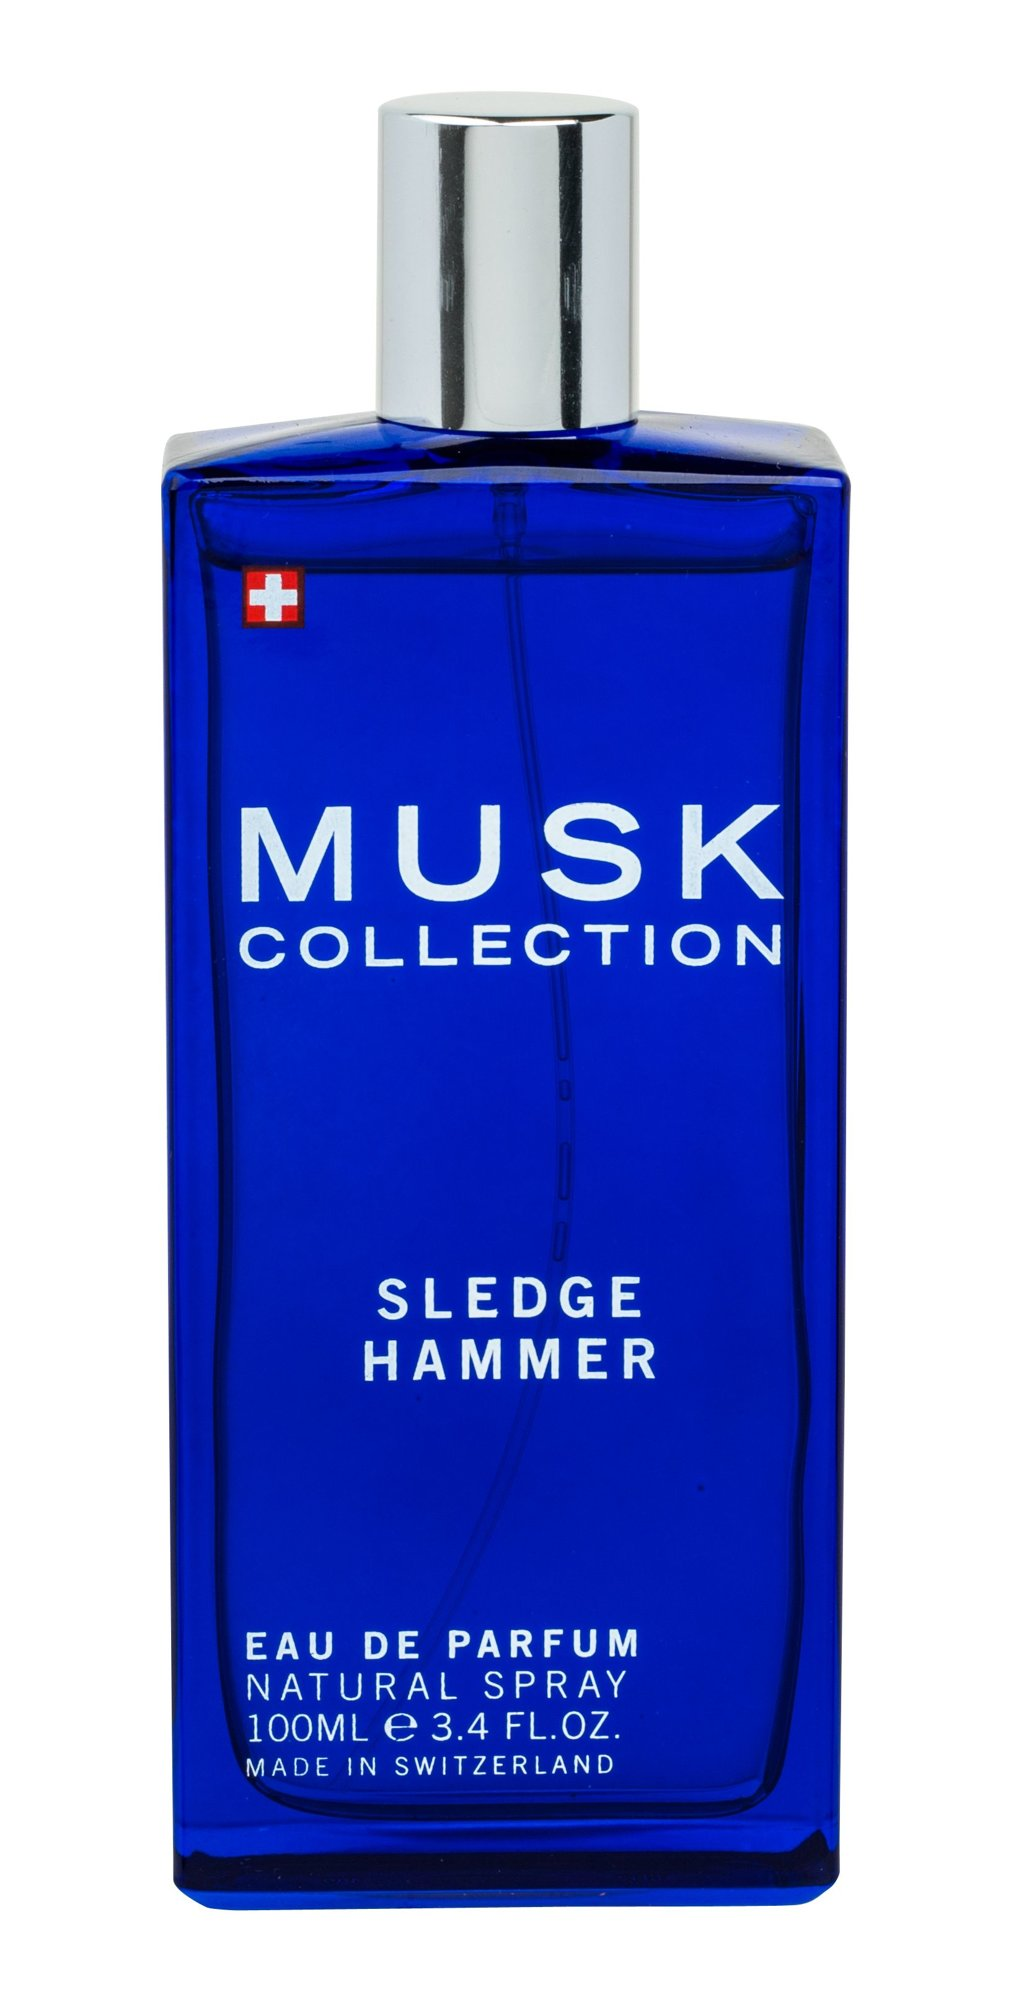 MUSK Collection Sledge Hammer EDP 100ml